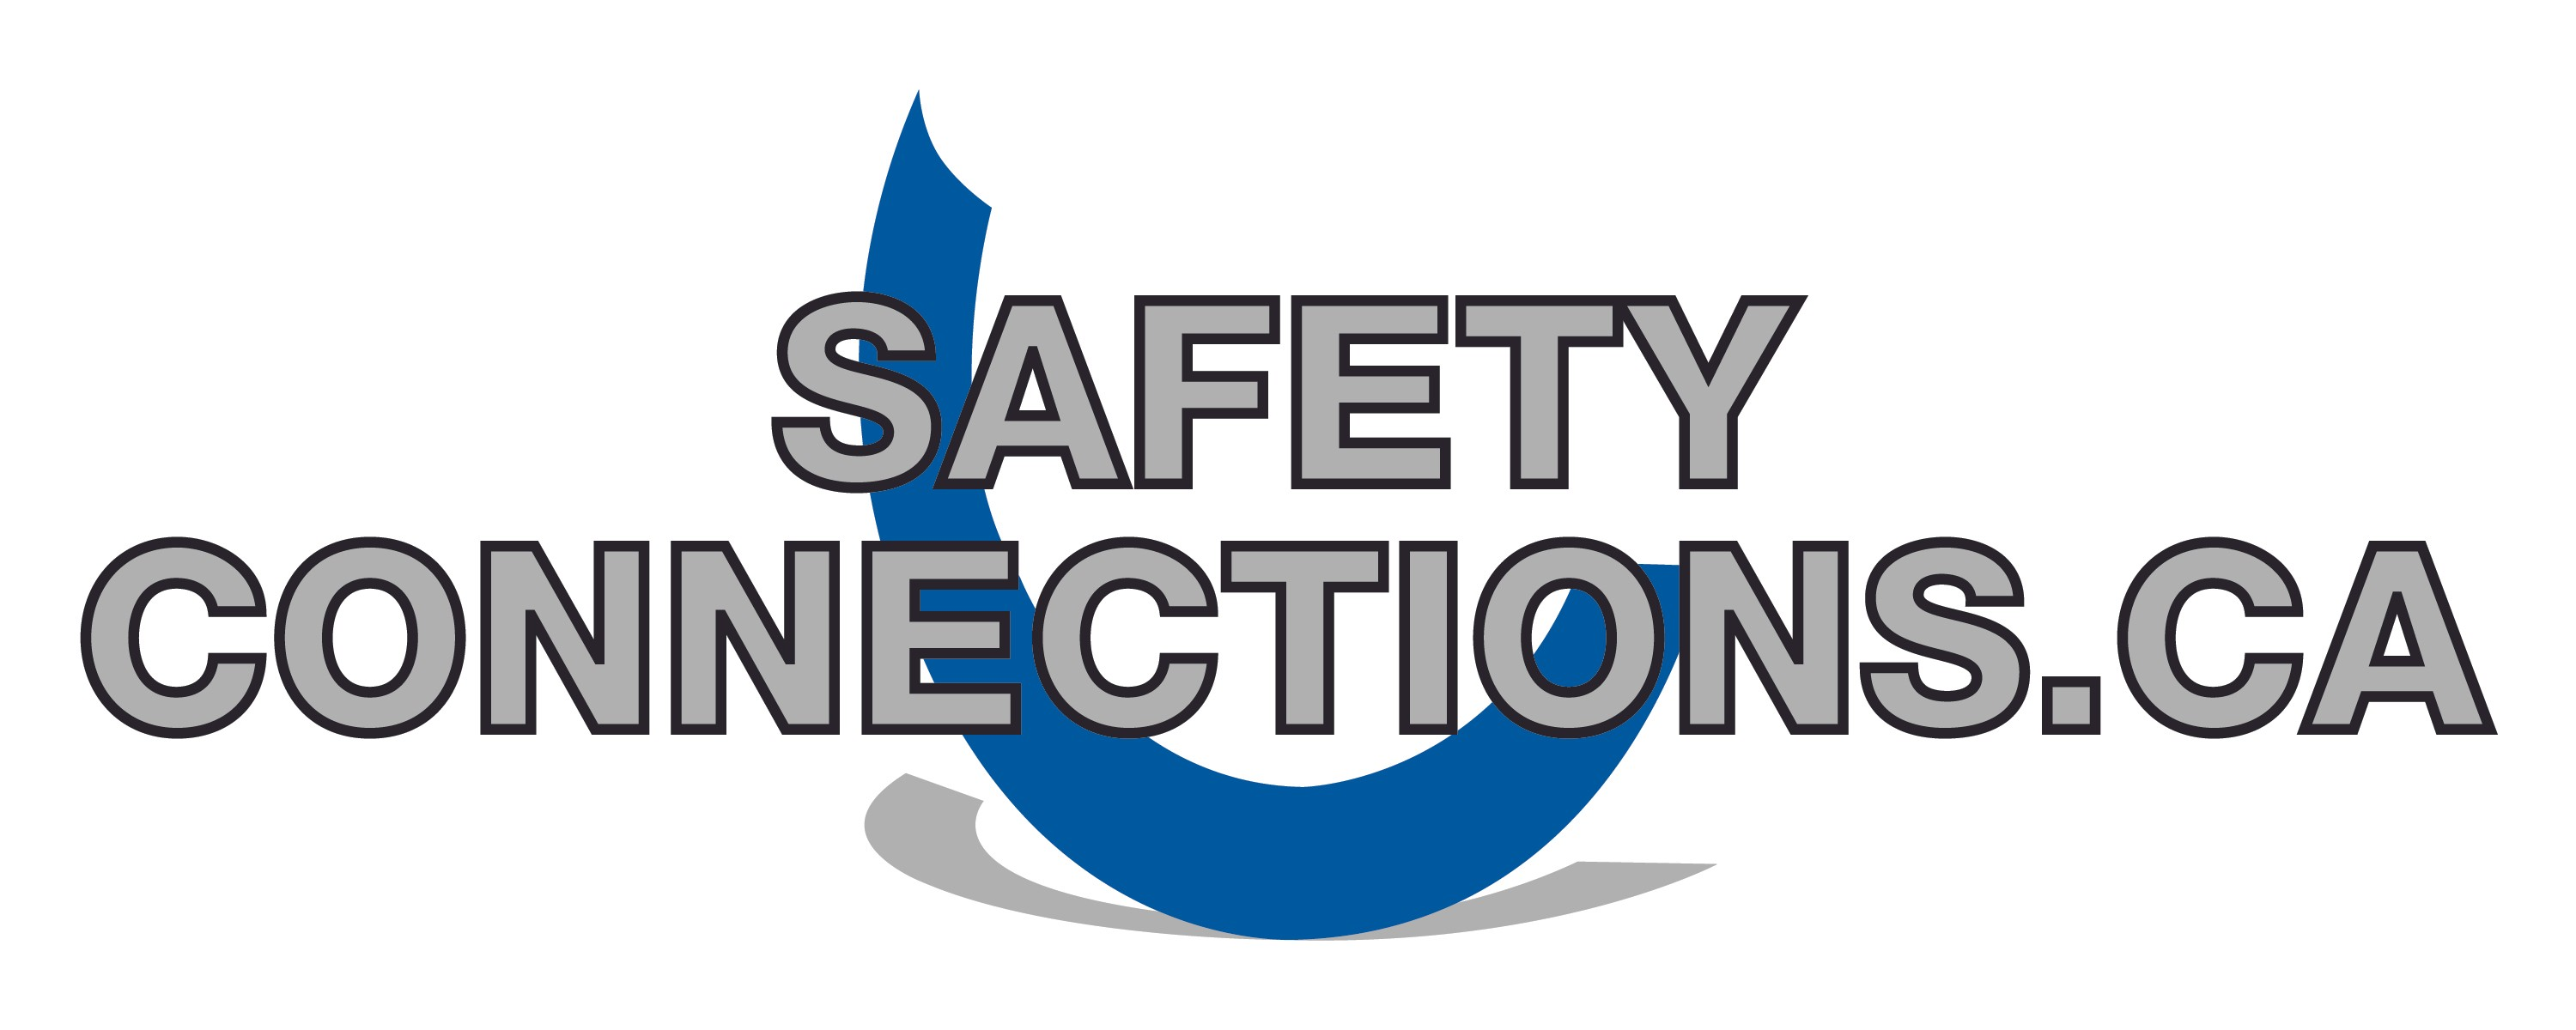 Connections Career & Safety Services Ltd logo